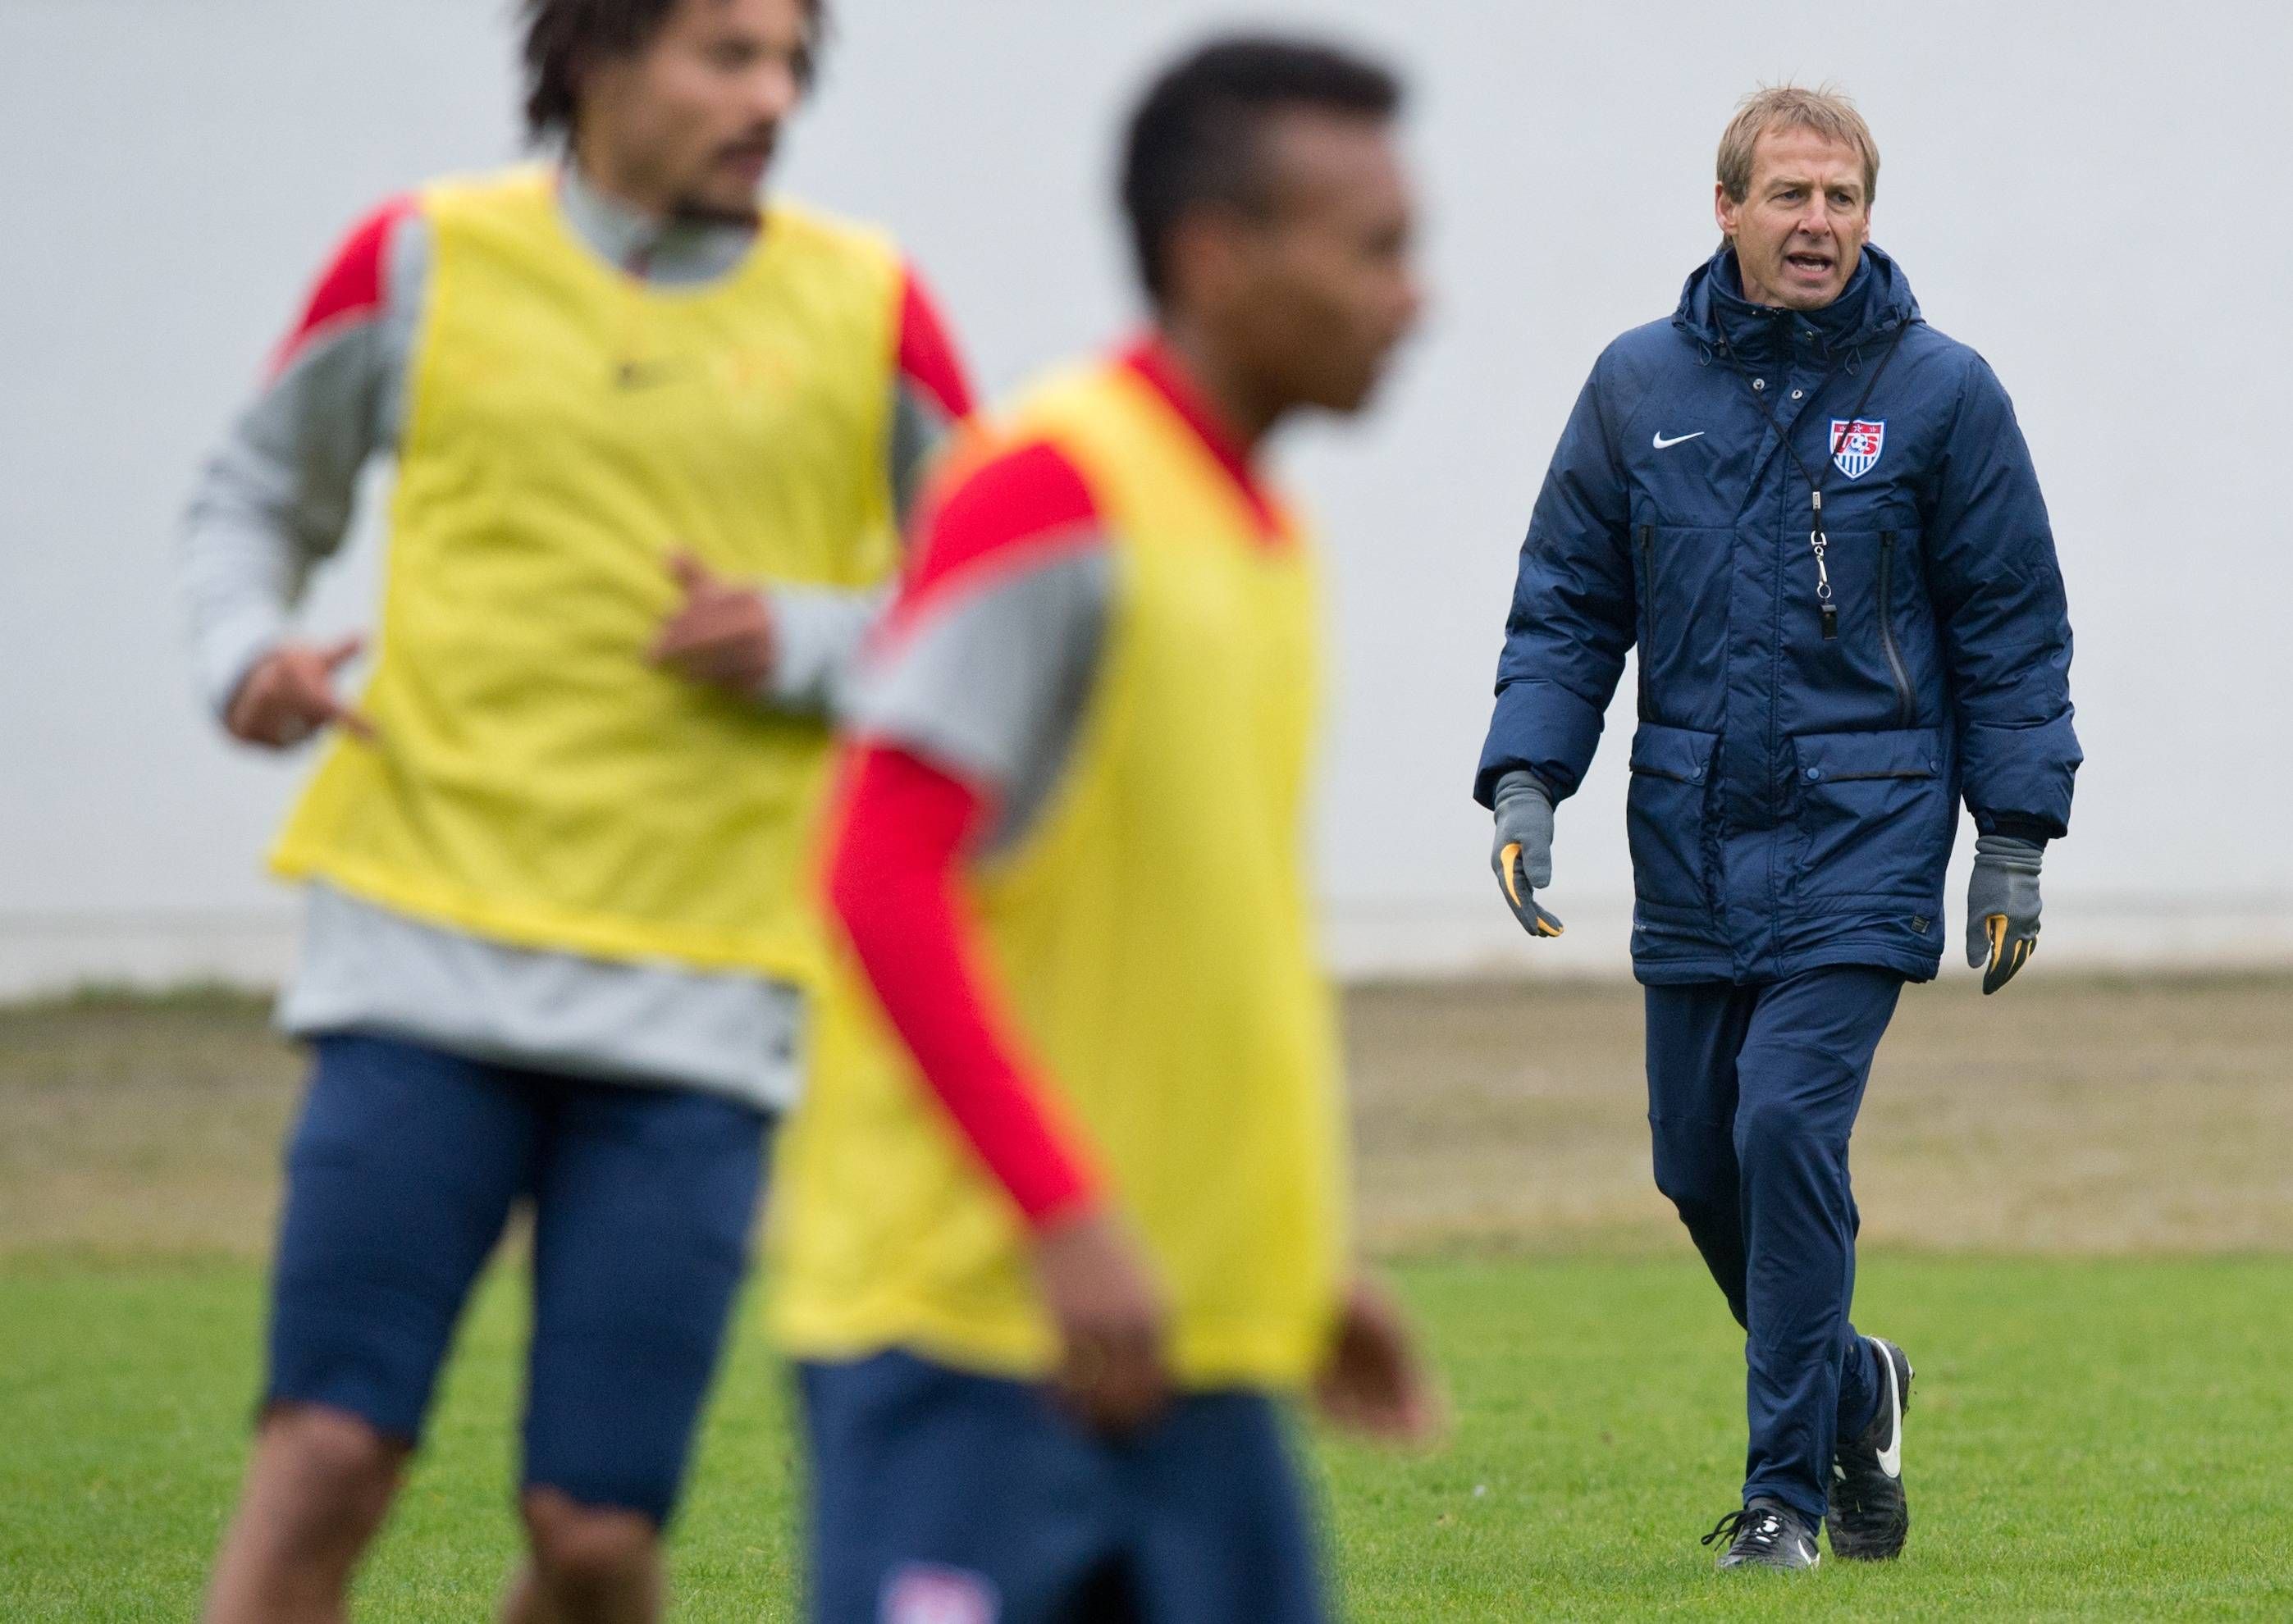 Coach Juergen Klinsmann leads a training session with the U.S. men's national soccer team Monday in Frankfurt Germany. The U.S. team will face Ukraine on Cyprus on Wednesday.